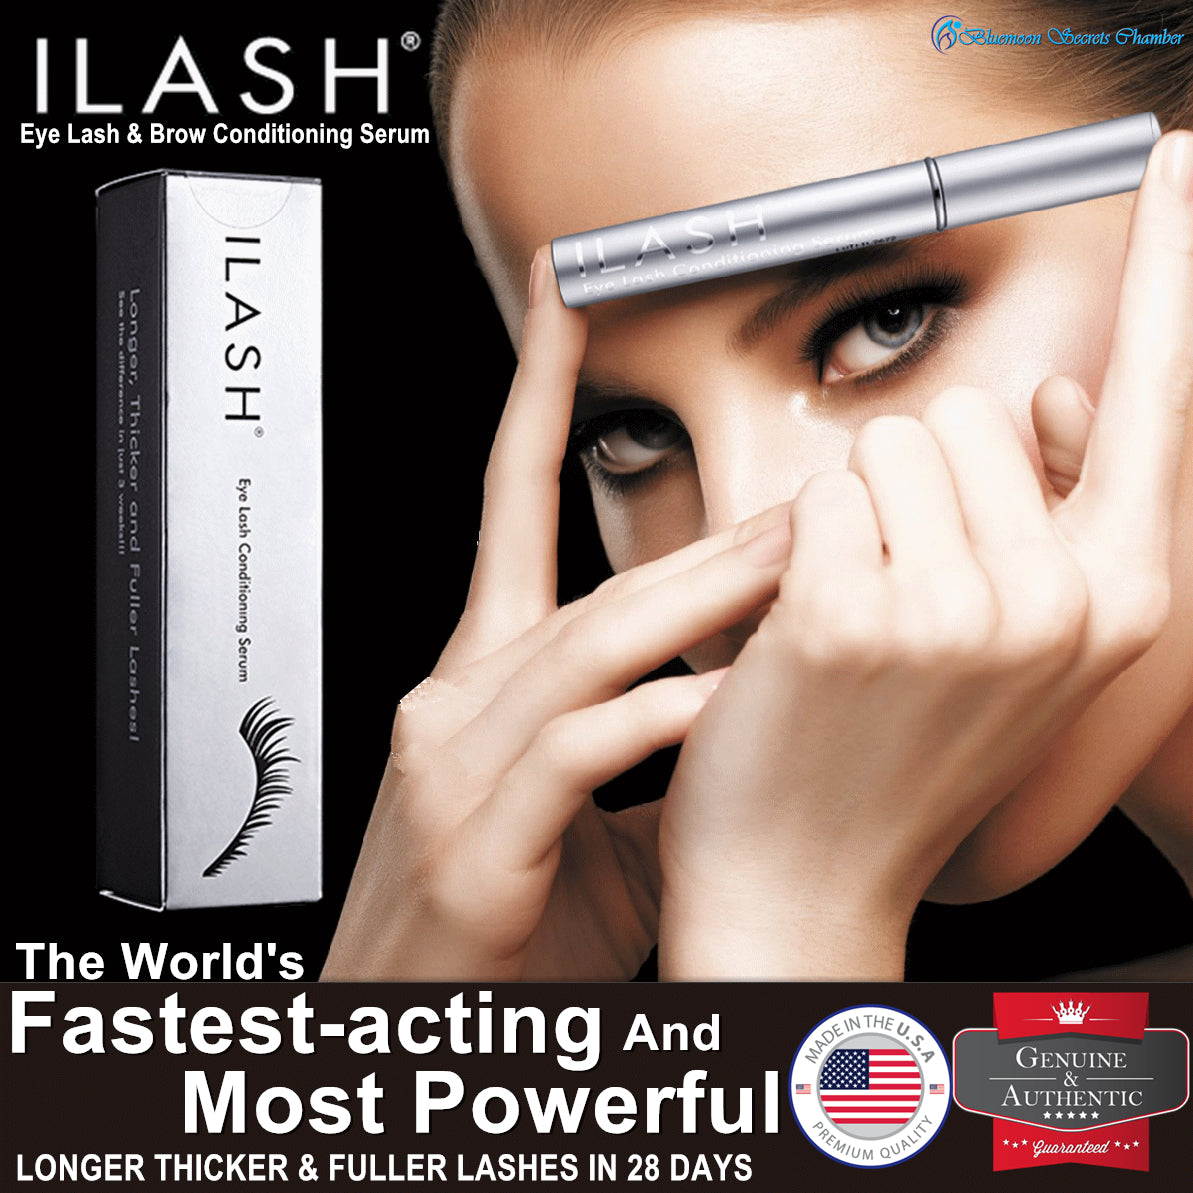 USA ILash | Eye Lash and Brow Conditioning Gel⭐美国神奇眼睫毛增长液 freeshipping - Bluemoon Secrets Chamber